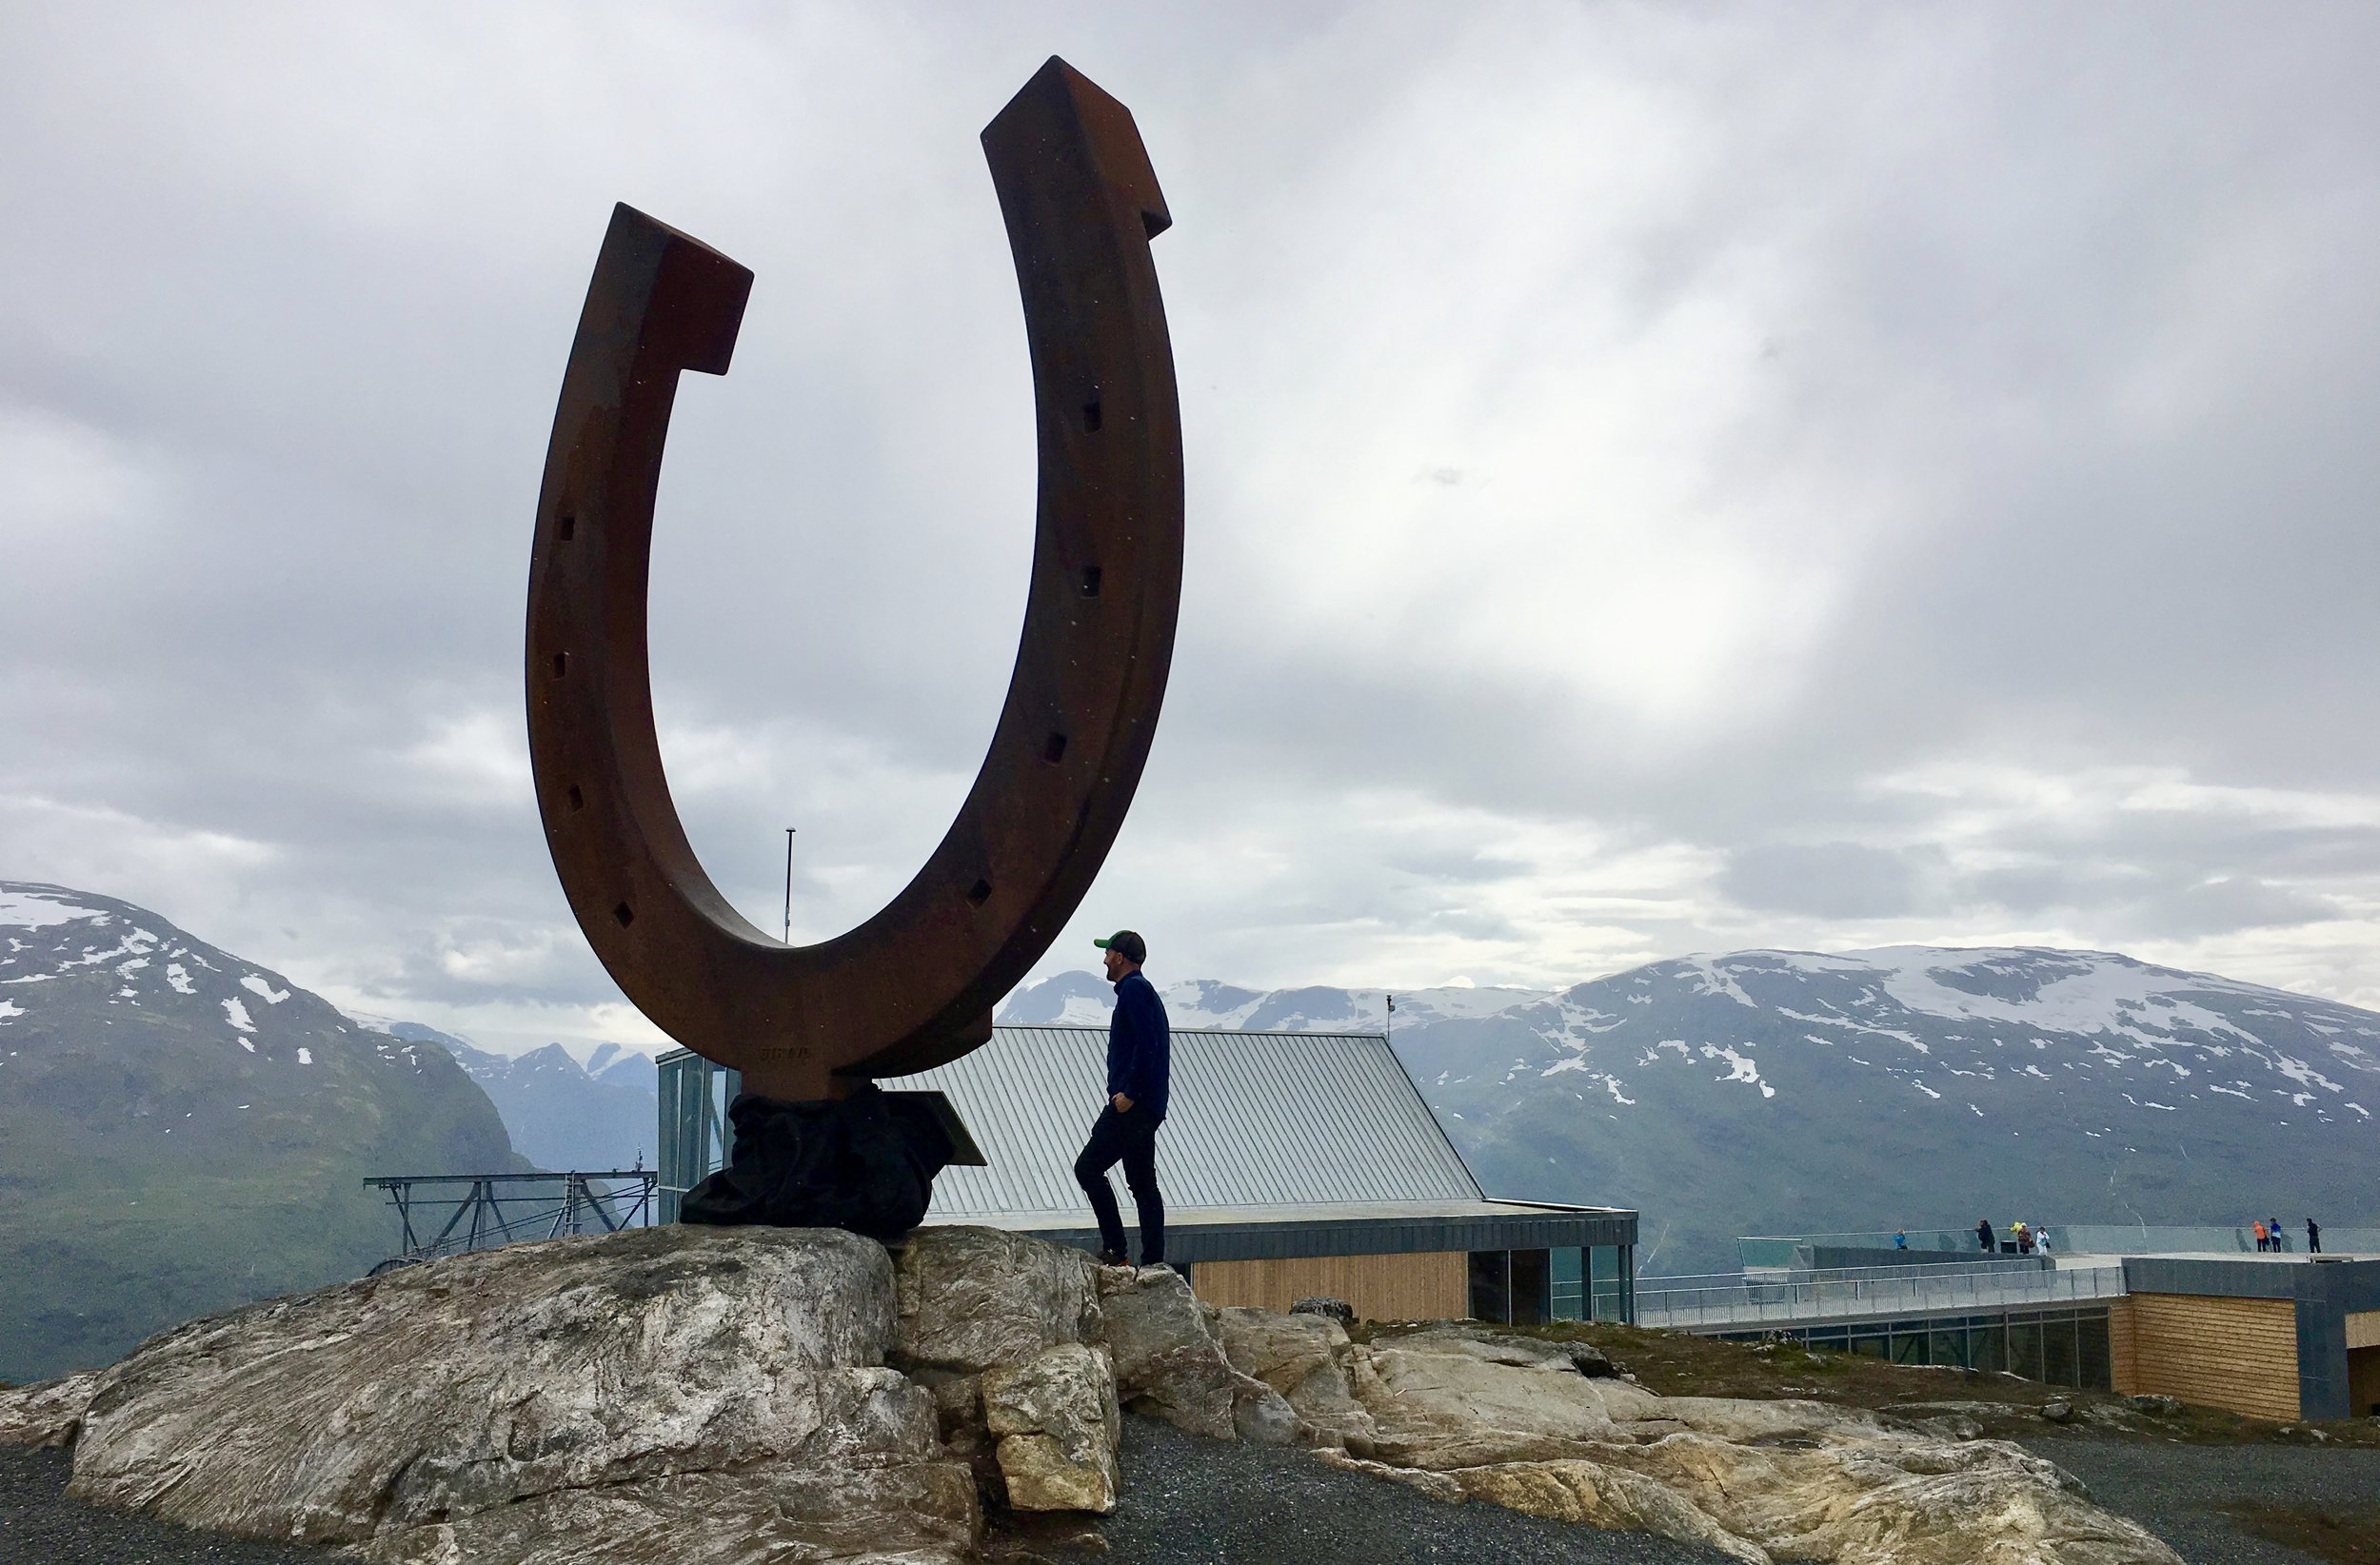 Giant horse shoe at Hoven